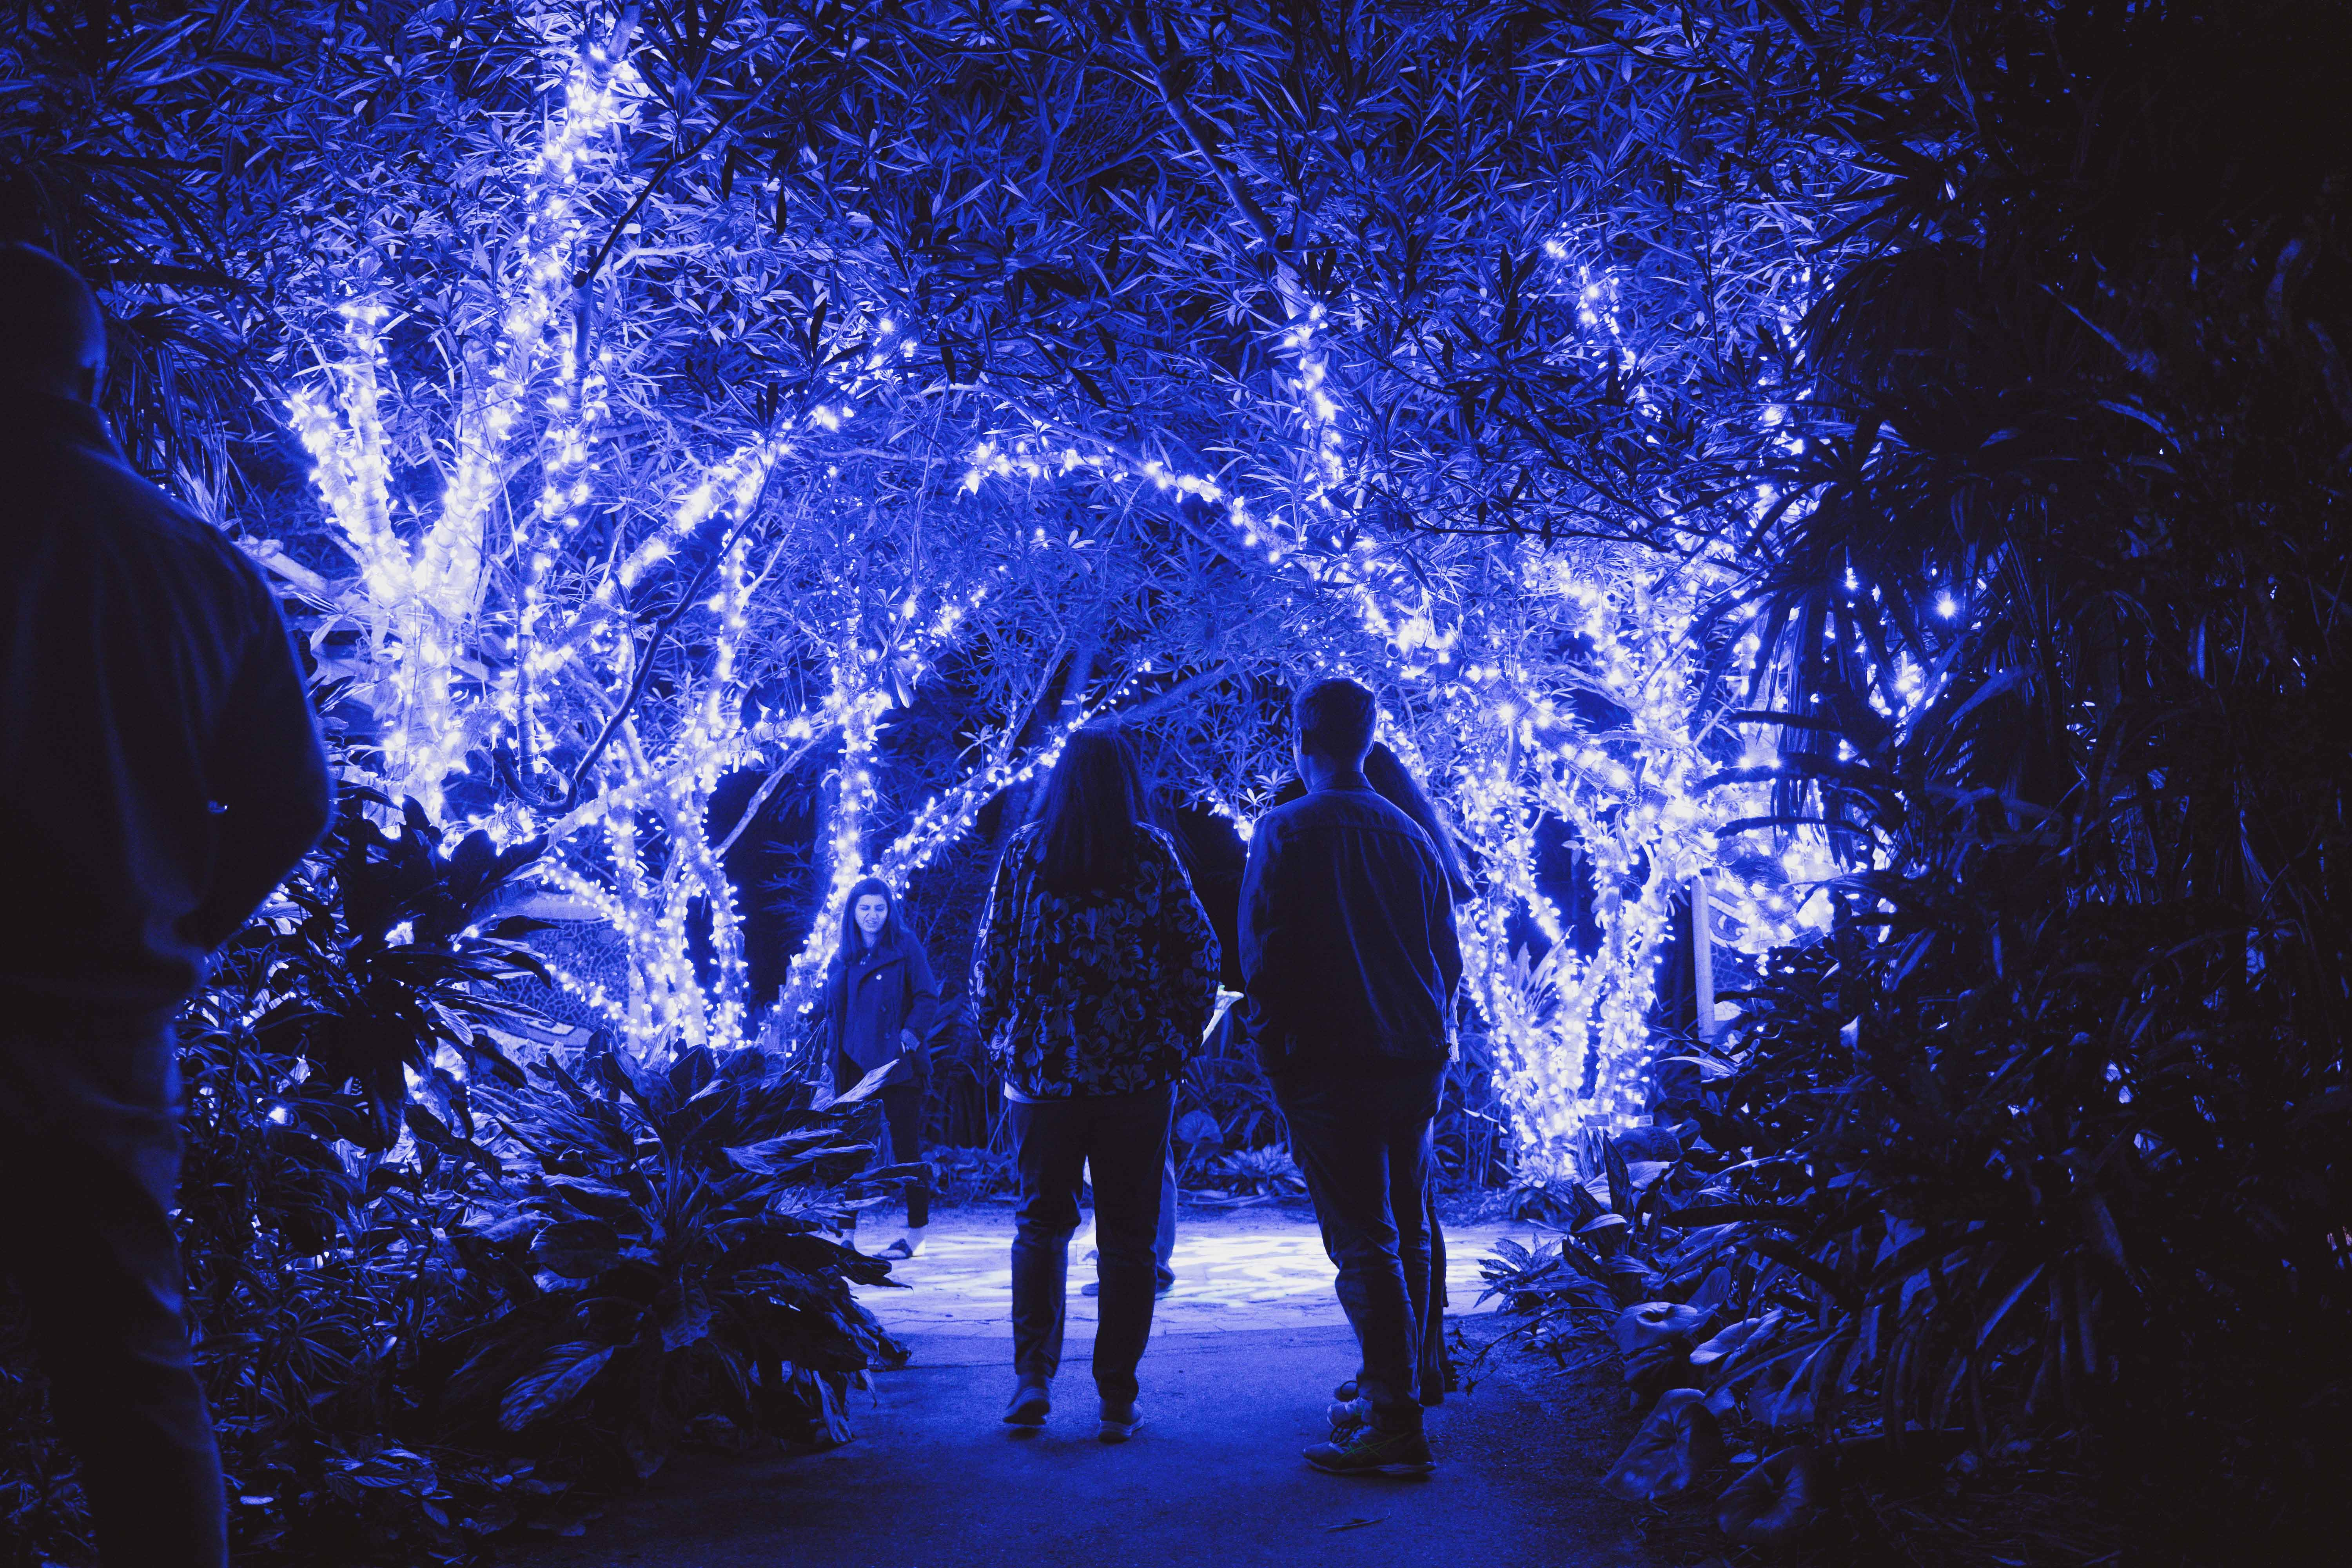 Silhouettes of people standing around trees with blue string lights on them at Night Lights in the Garden